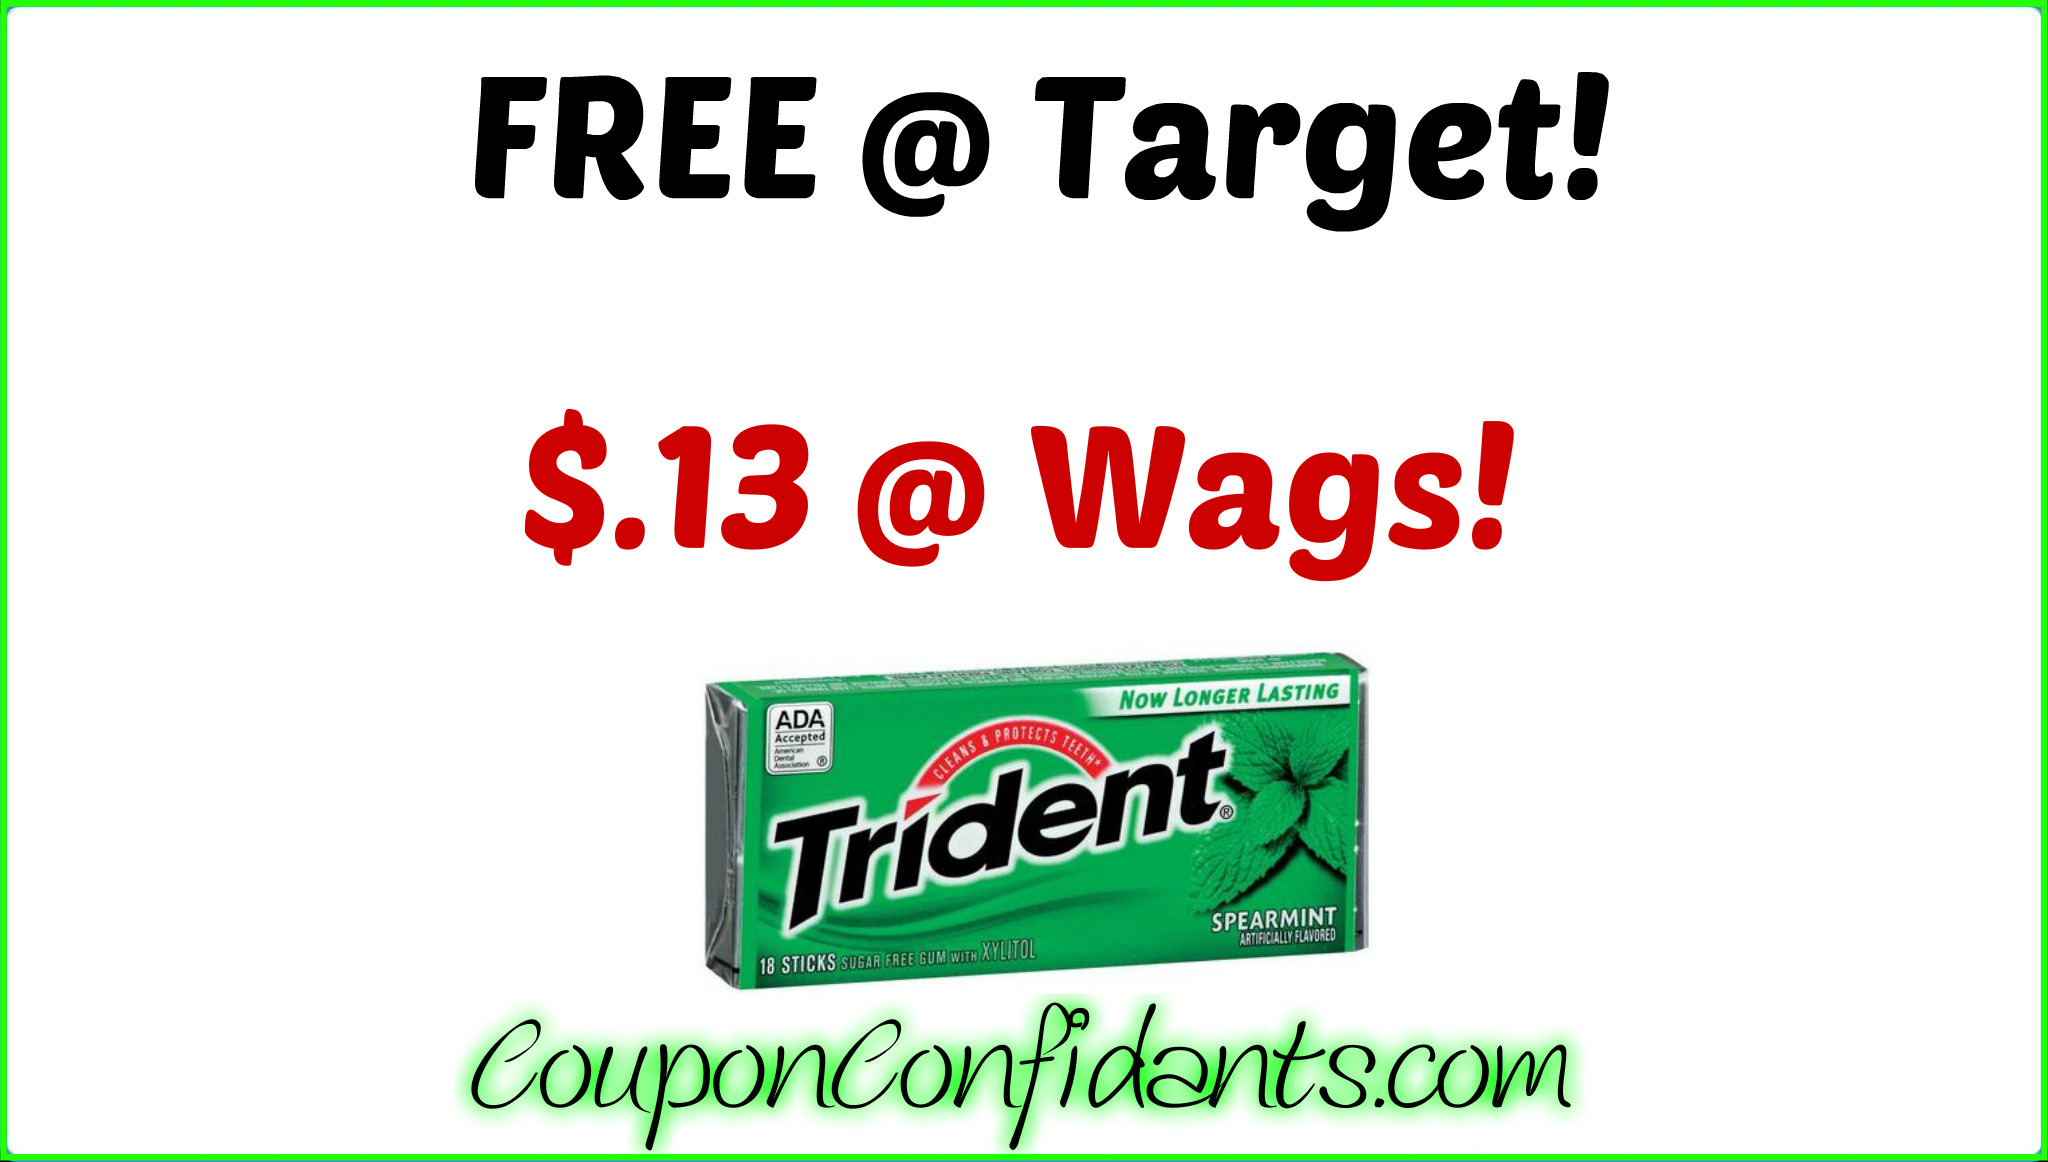 photo relating to Trident Coupons Printable named Cost-free Trident at Focus AND $.13 every single at Walgreens